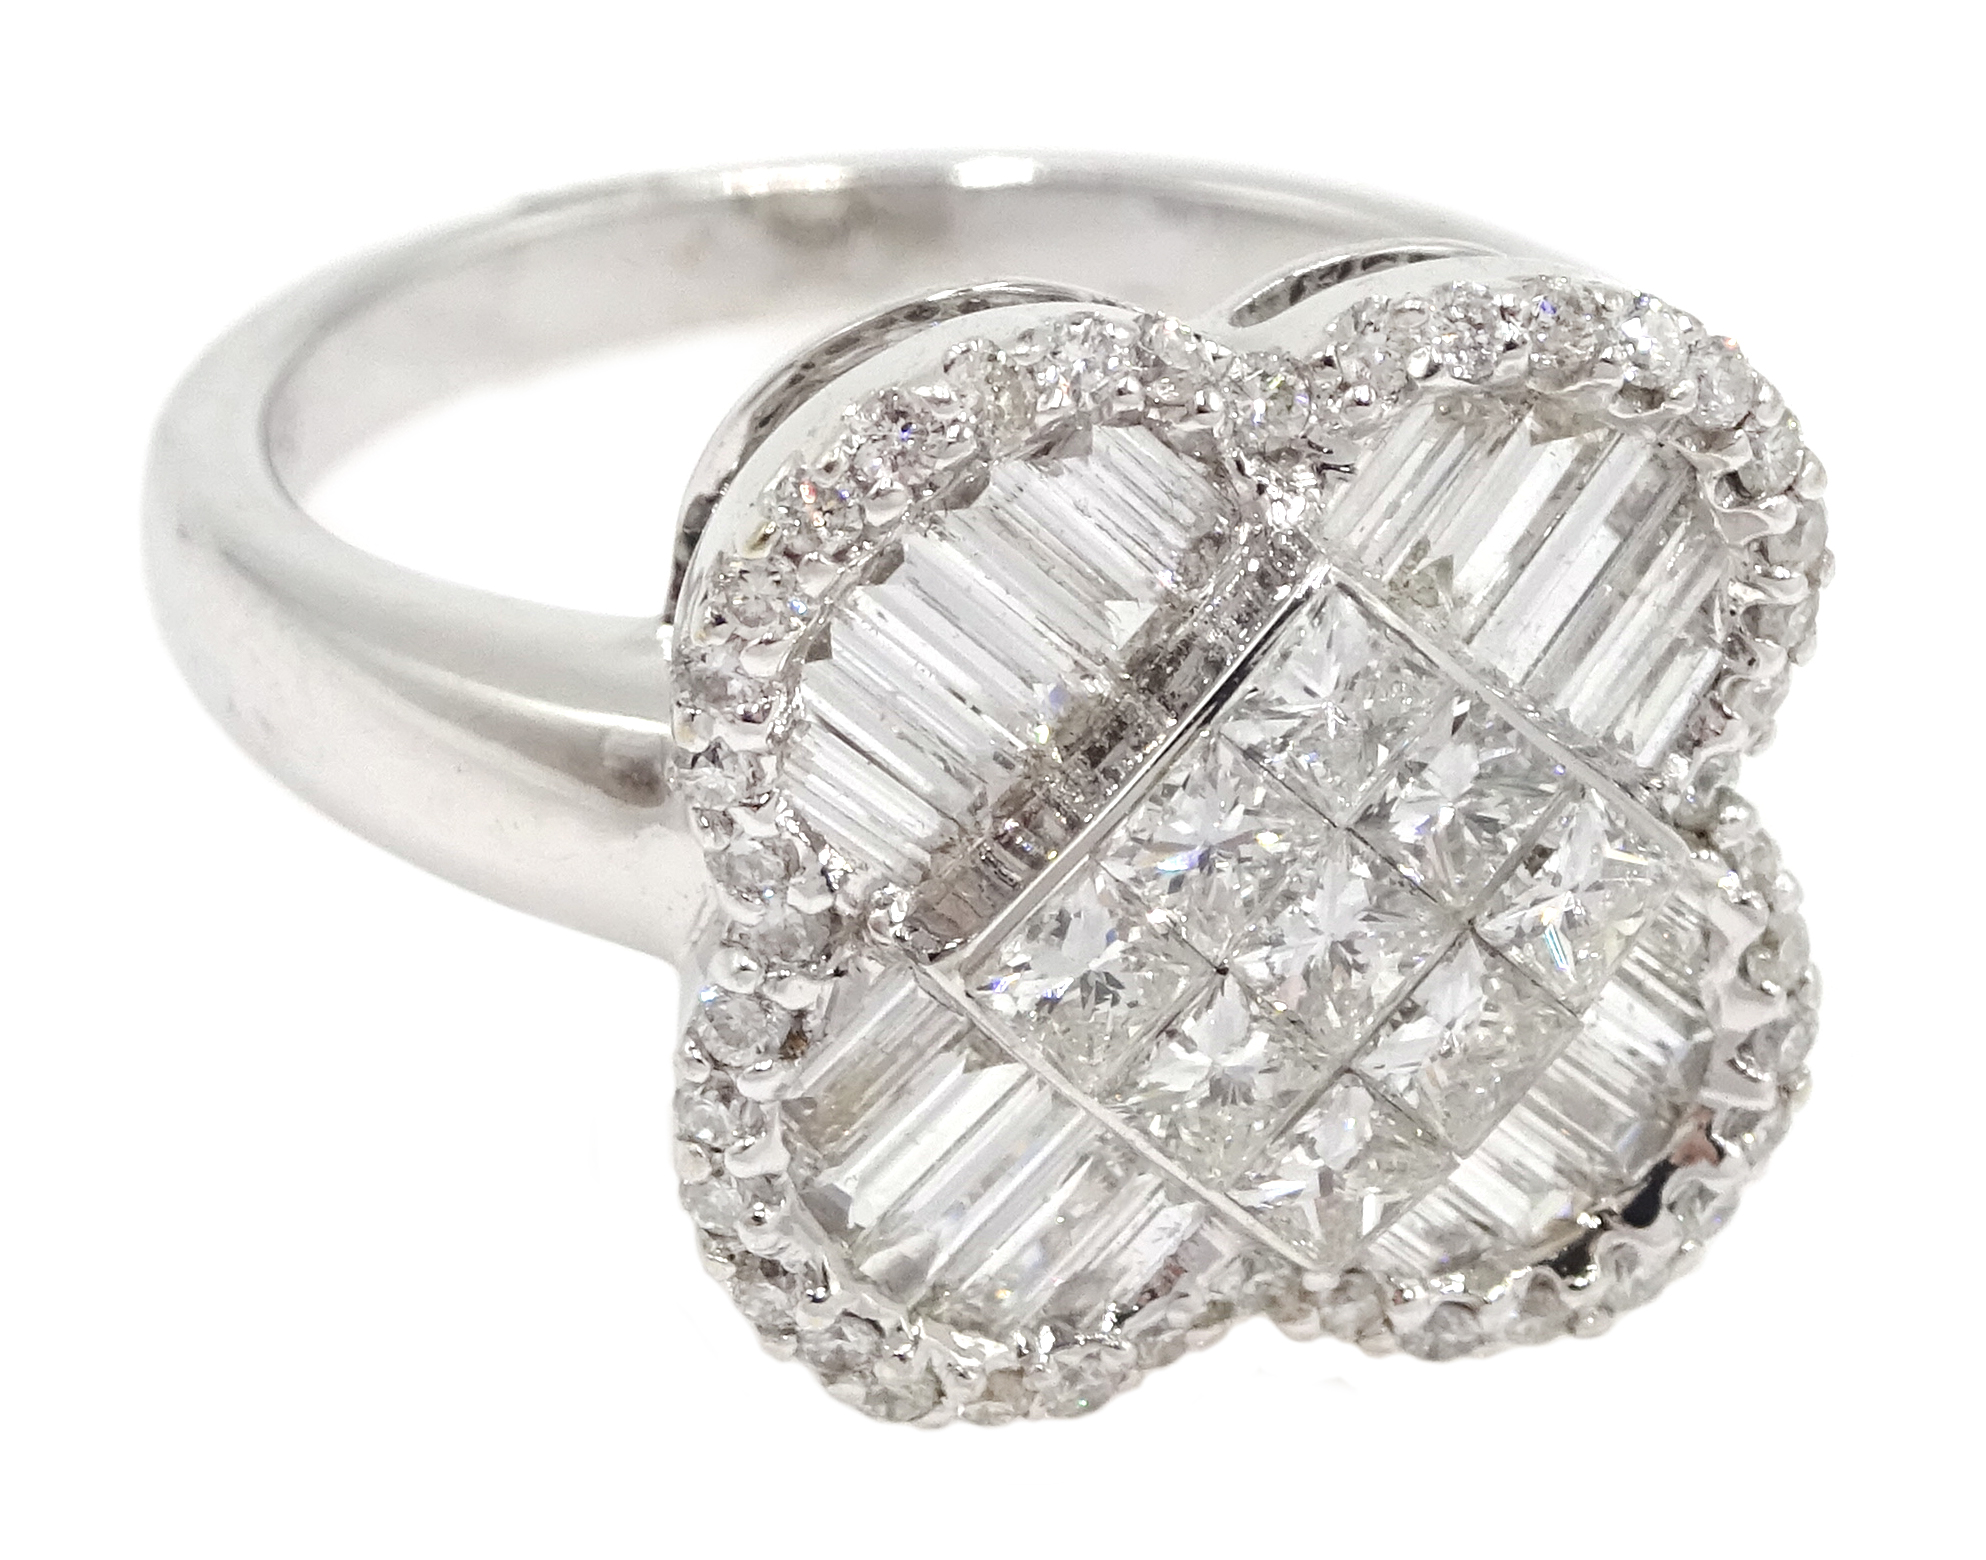 18ct white gold and diamond cluster ring, diamond total weight approx 1.25 carat, free UK mainland - Image 3 of 6